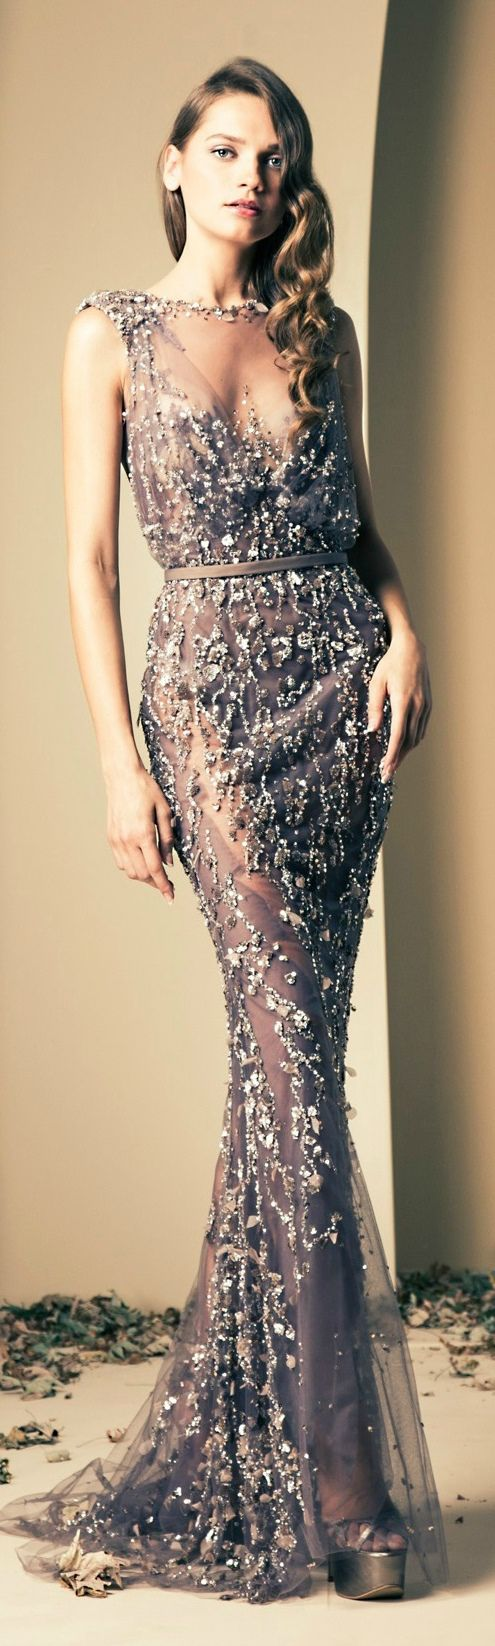 Ziad Nakad 2014 Fall Couture Collection - beautiful dress, not keen on the hooker heels though!!!